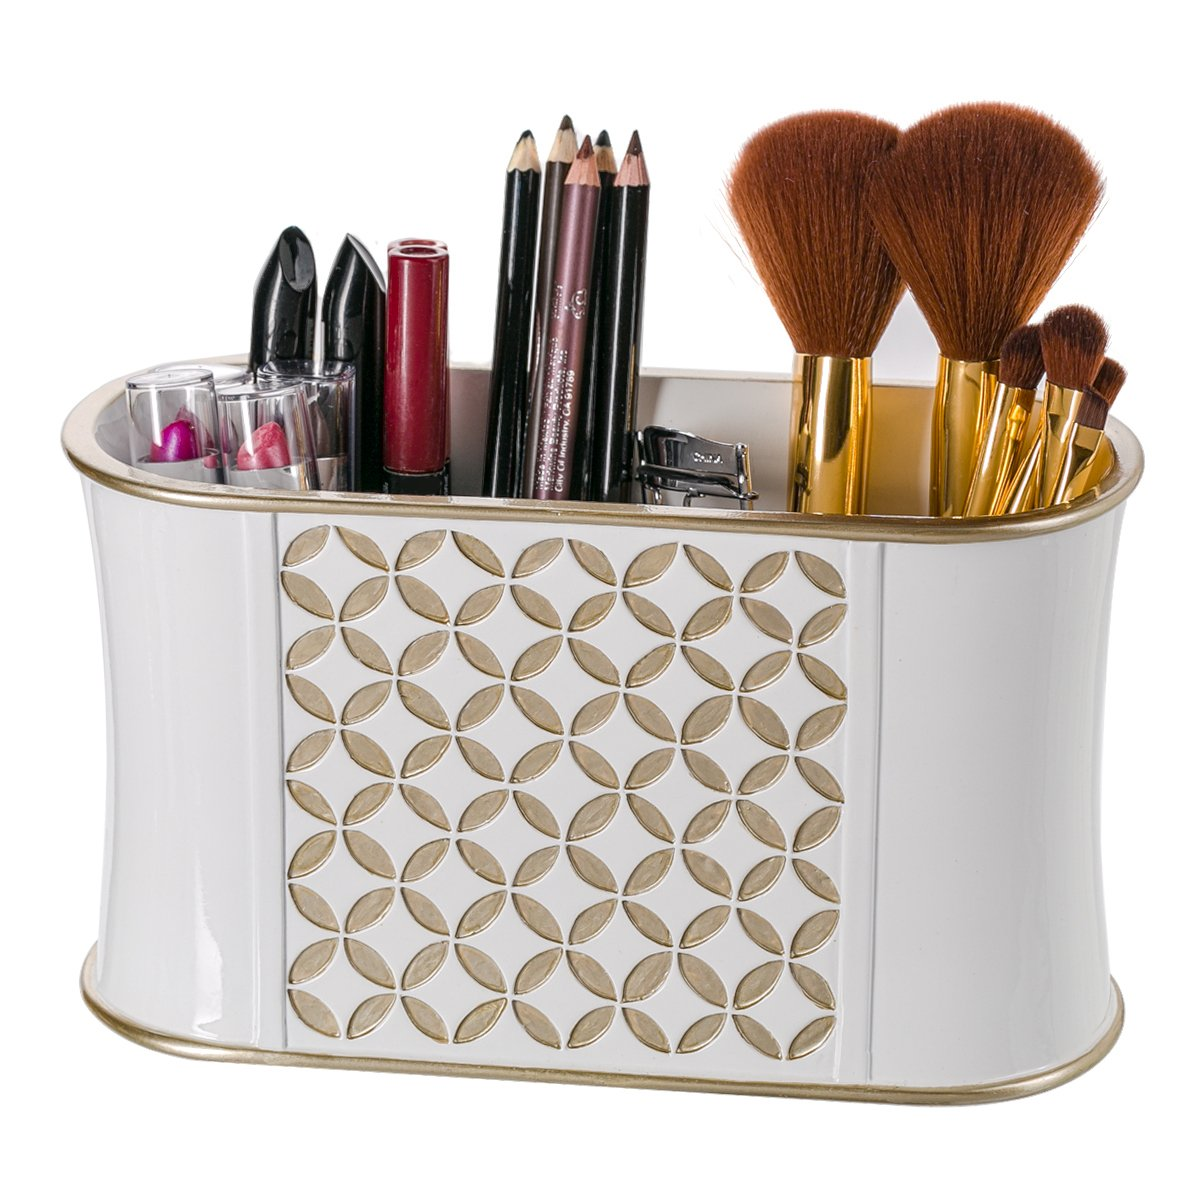 Diamond Lattice Makeup Brush Holder, Sink Cabinet Vanity Organizers   Decorative Bathroom Countertop Makeup Organizer